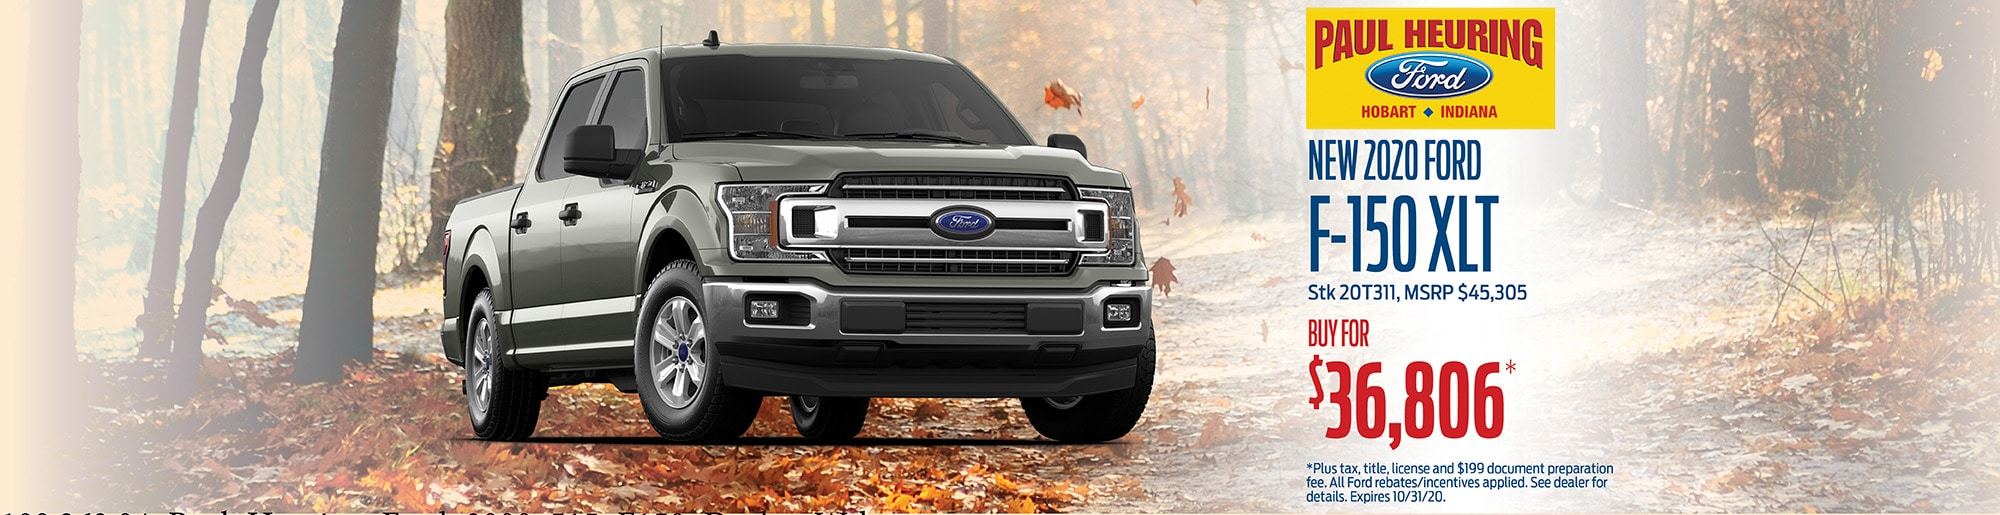 2020 Ford Ranger XLT, Buy for $36,806 | Hobart, IN